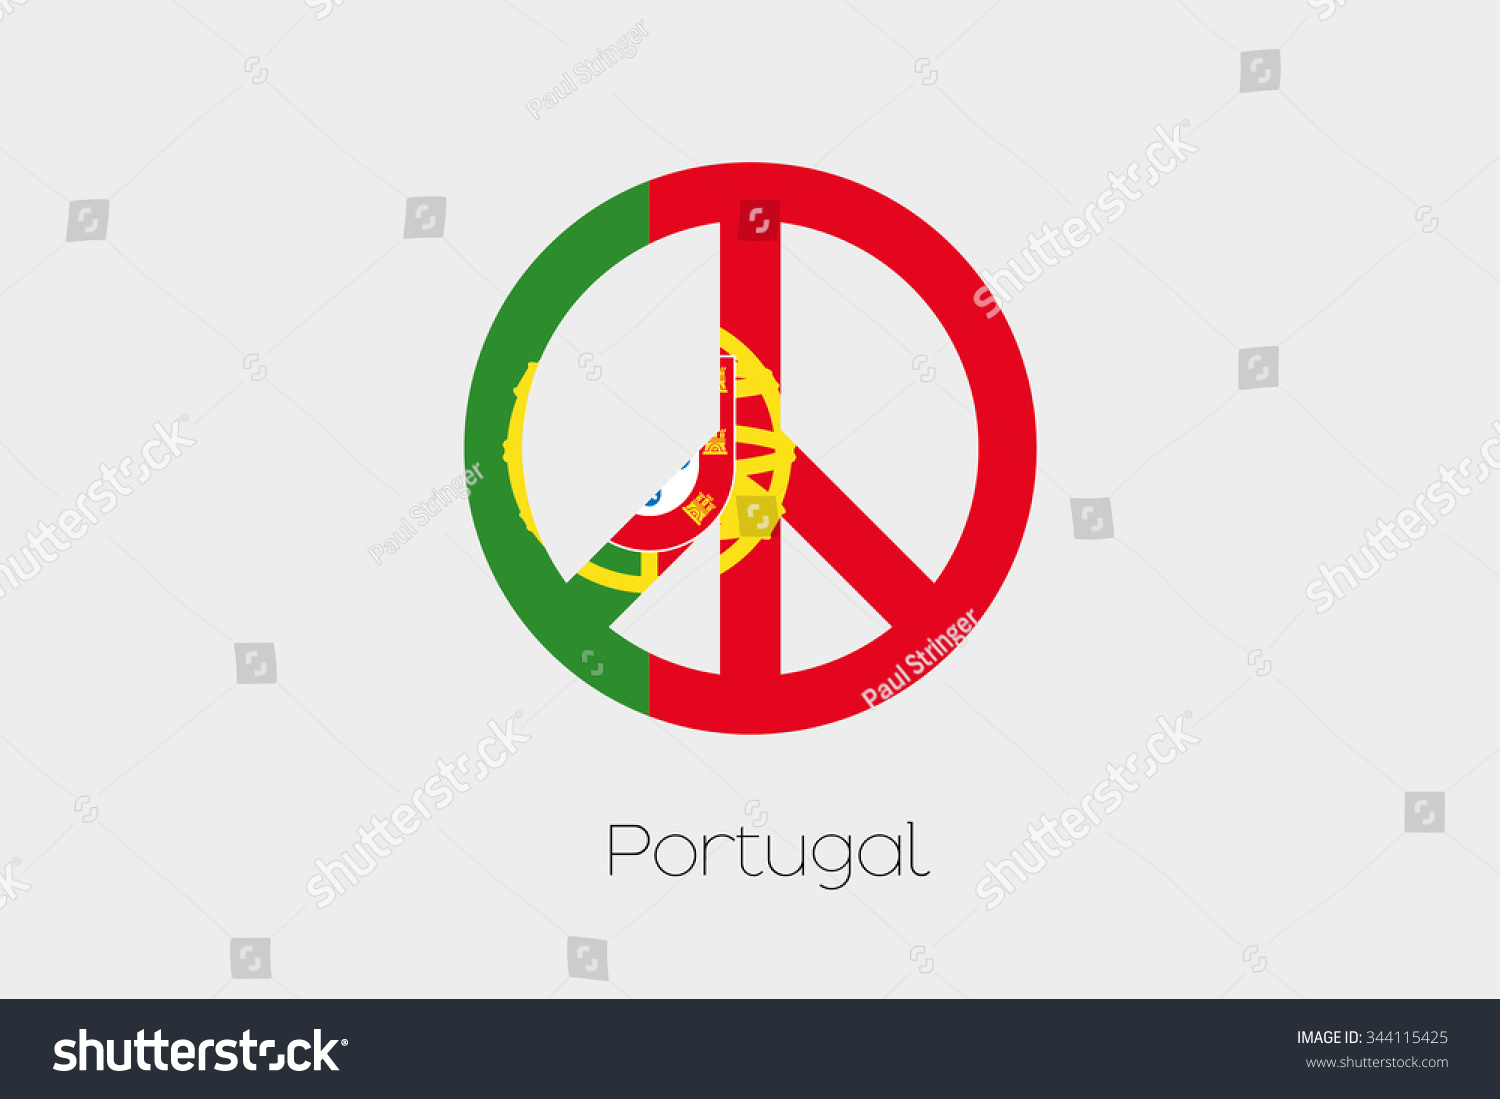 Peace symbol flag portugal stock illustration 344115425 shutterstock a peace symbol with the flag of portugal biocorpaavc